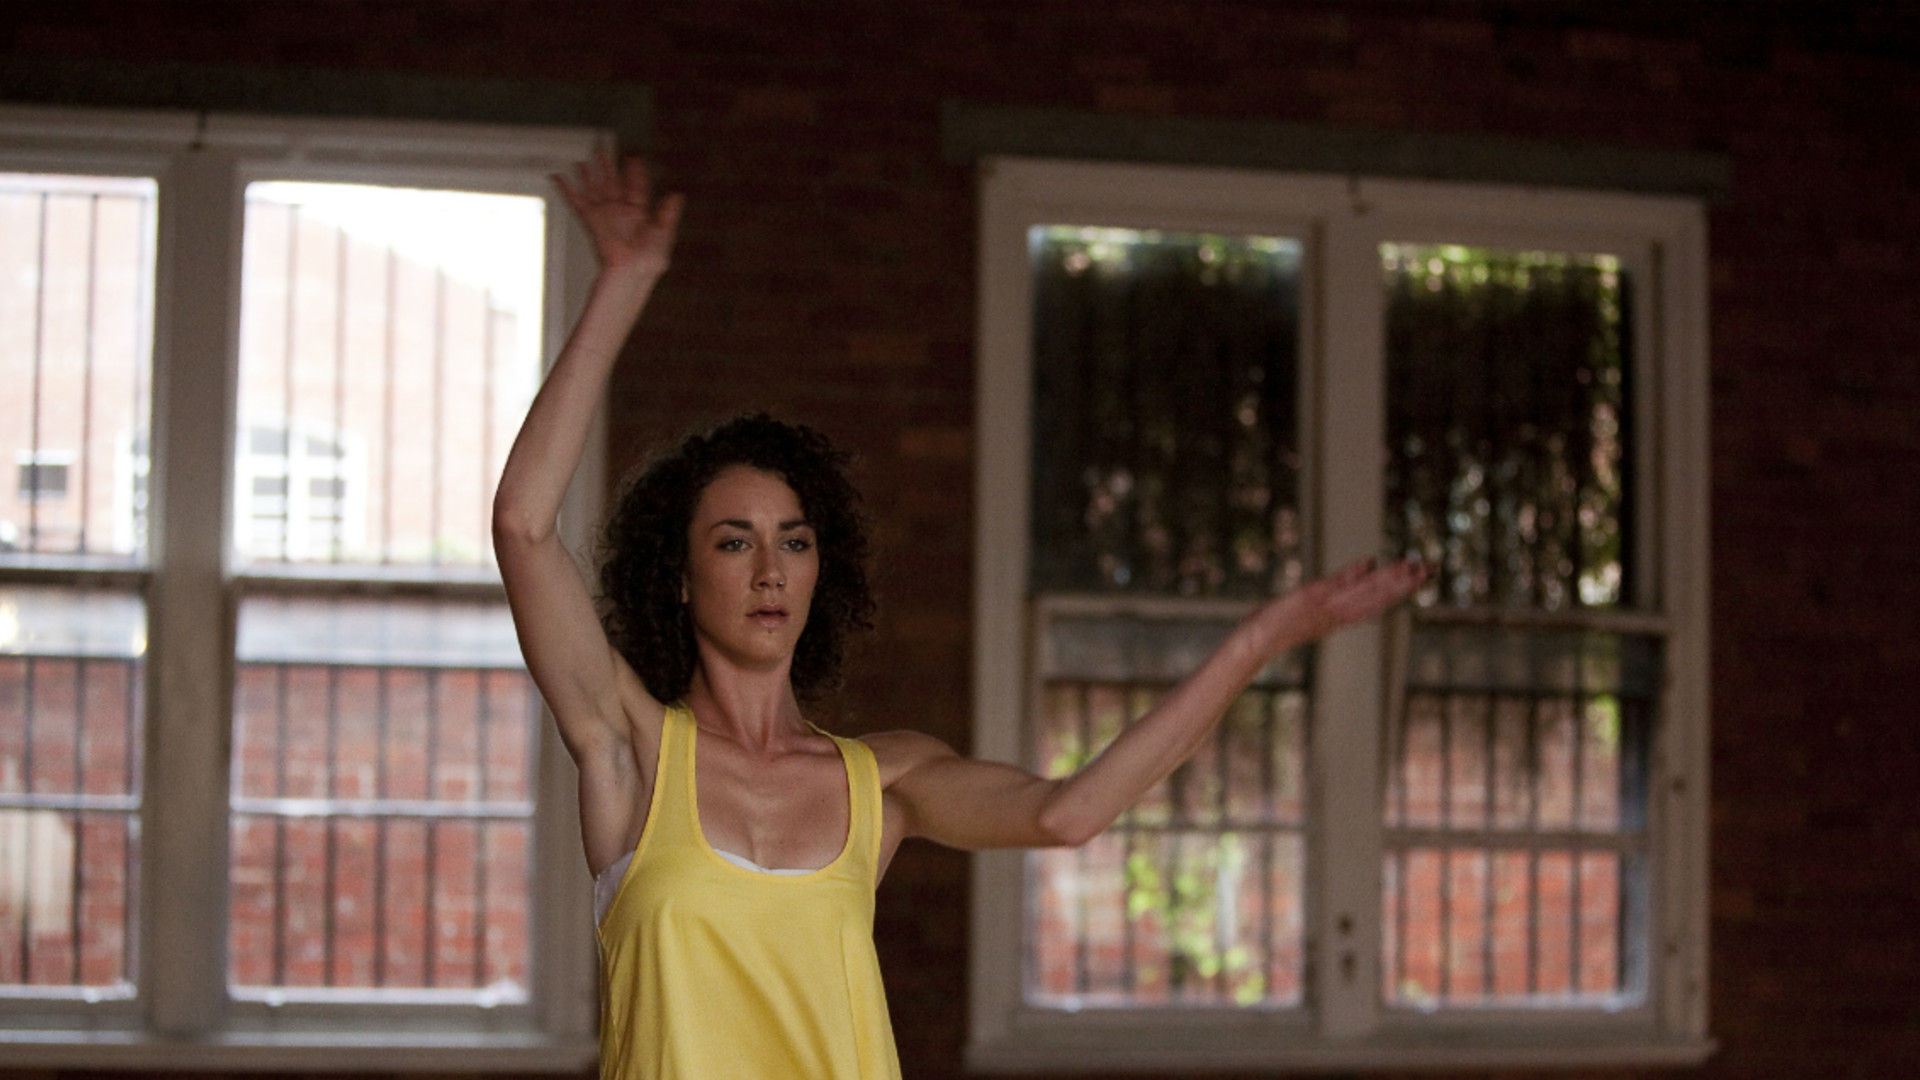 A woman in a yellow top, Frankie Snowden, holds her arms up and looks intently forwards with two windows behind her.